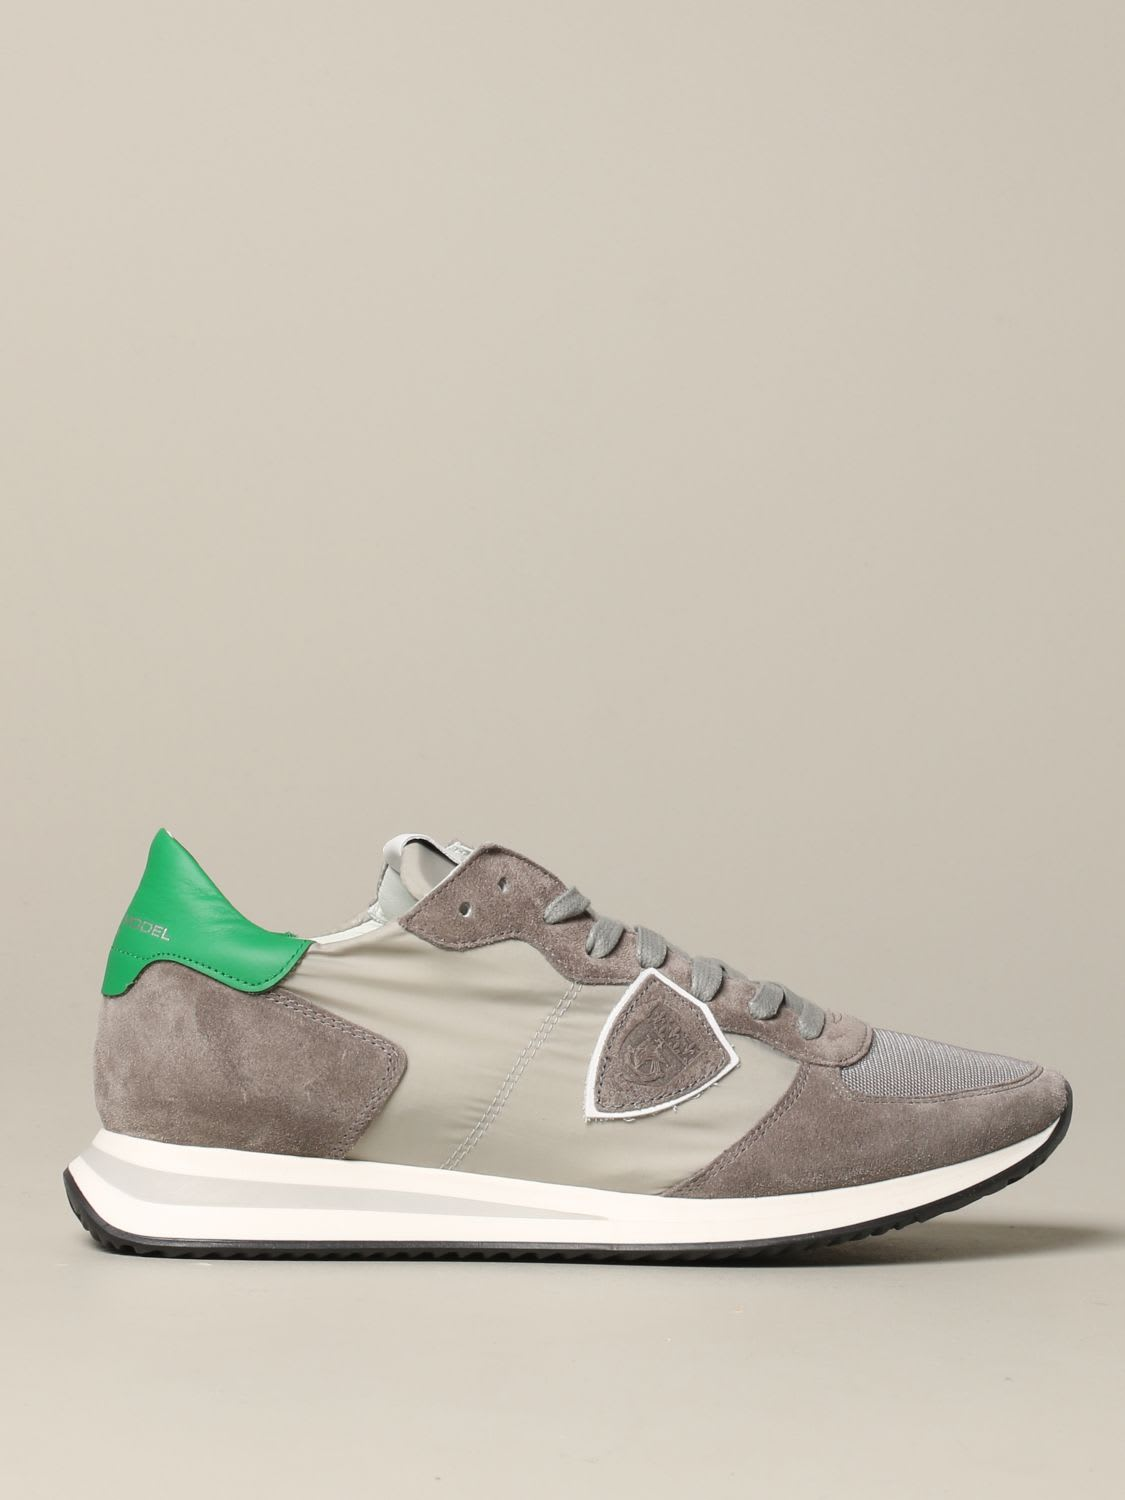 Philippe Model Sneakers Tropez Philippe Model Sneakers In Suede And Nylon